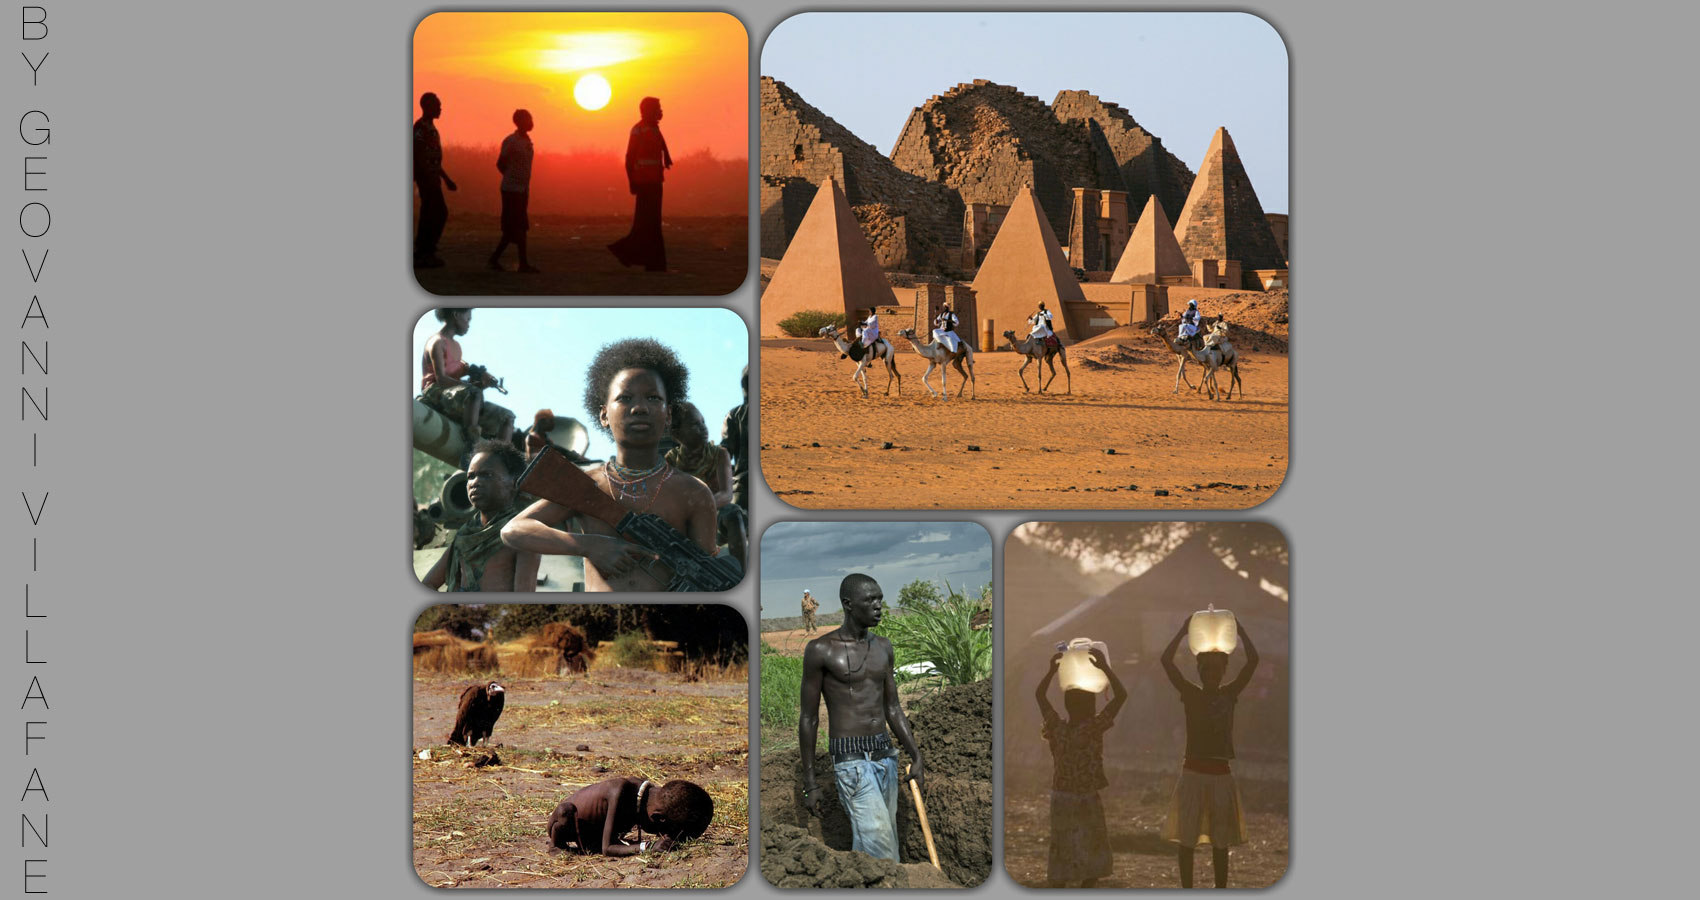 Sudan For The Everyman written by Geovanni Villafañe at Spillwords.com